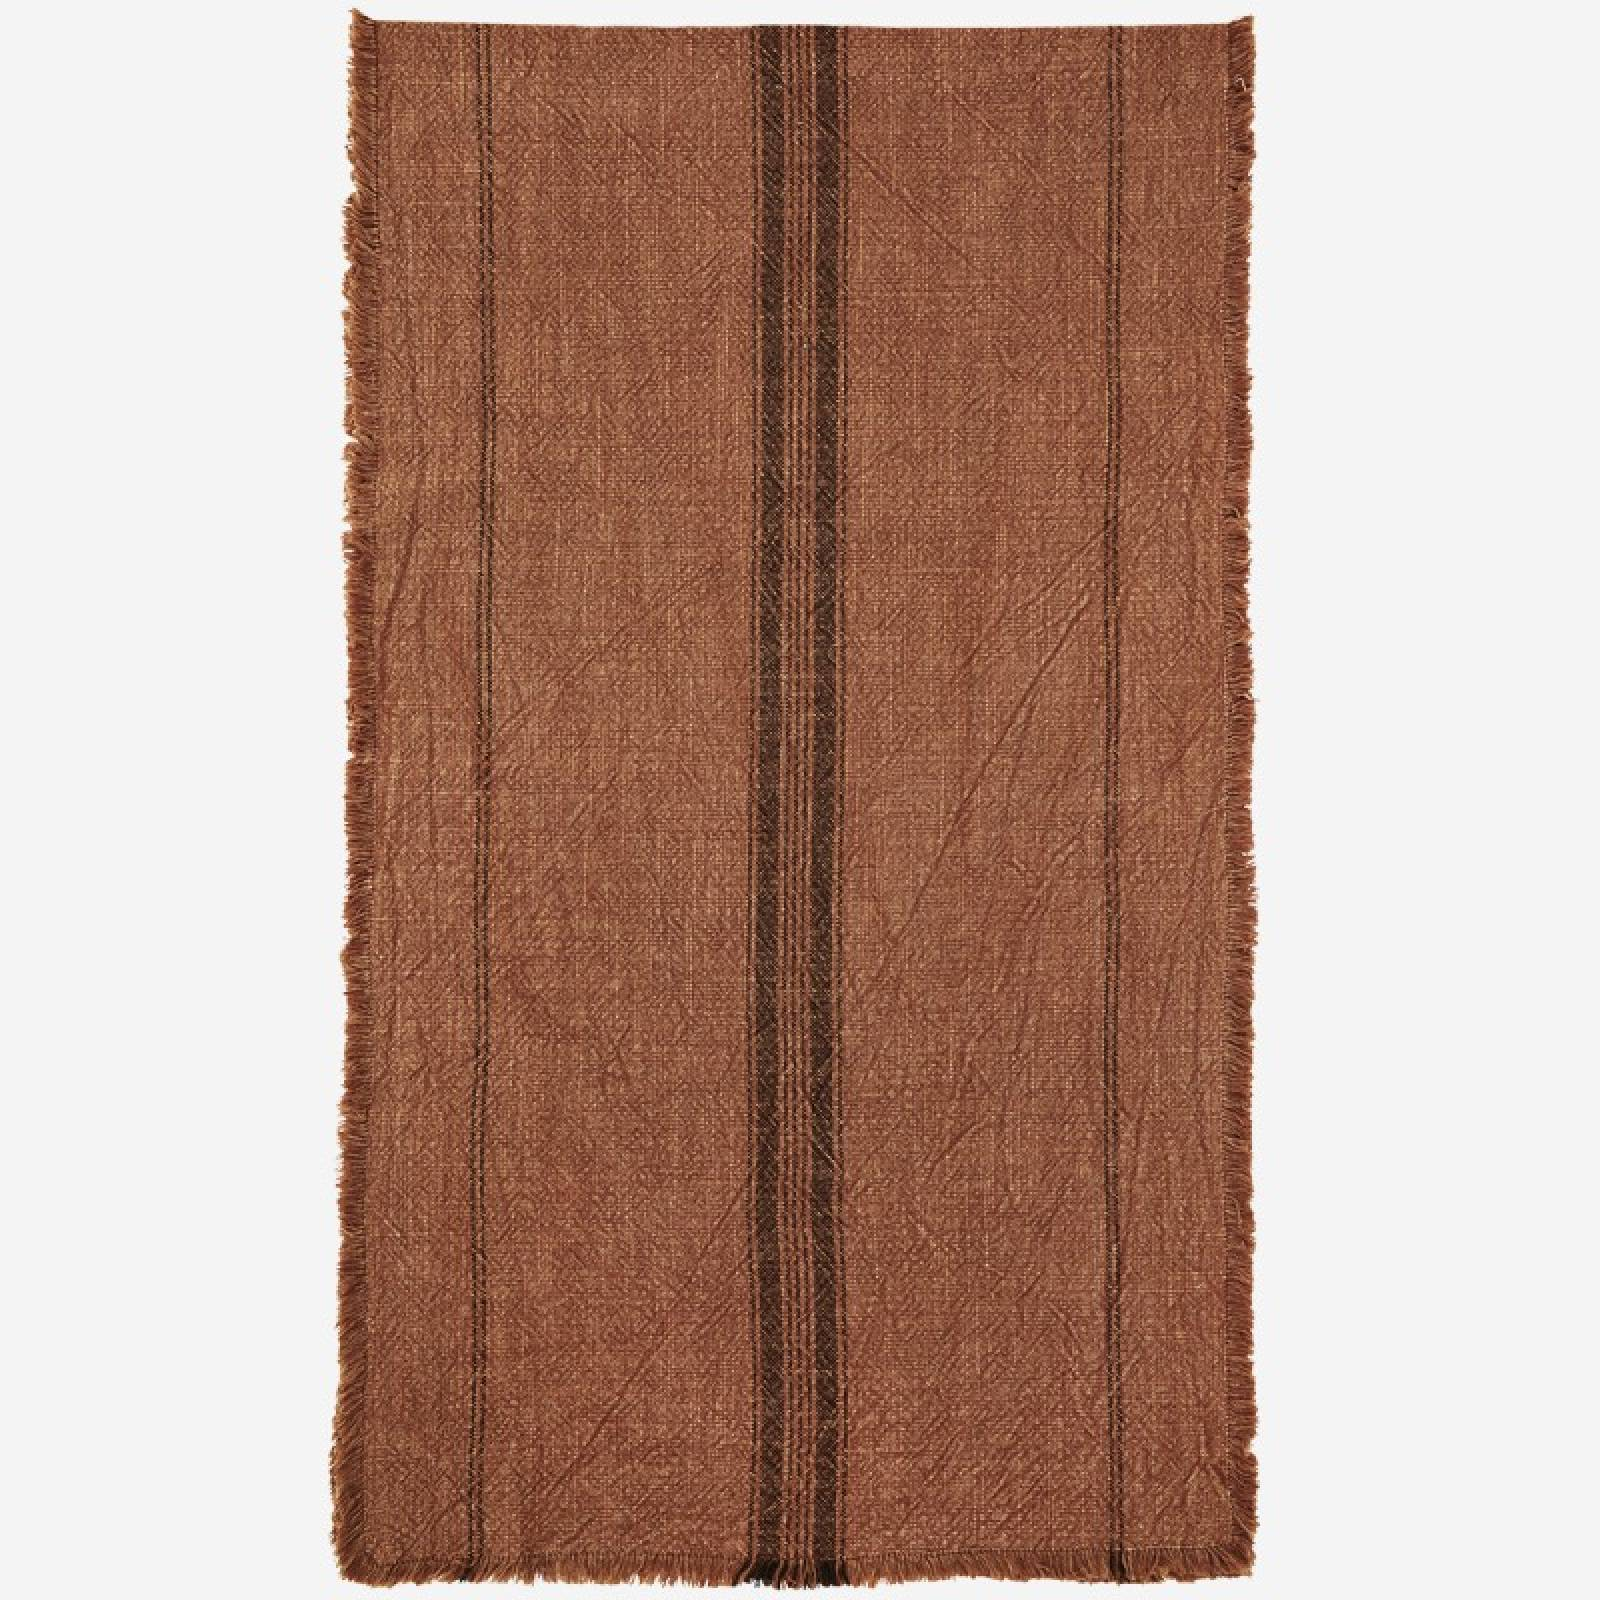 Striped Cotton Table Runner With Fringing in Burnt Orange